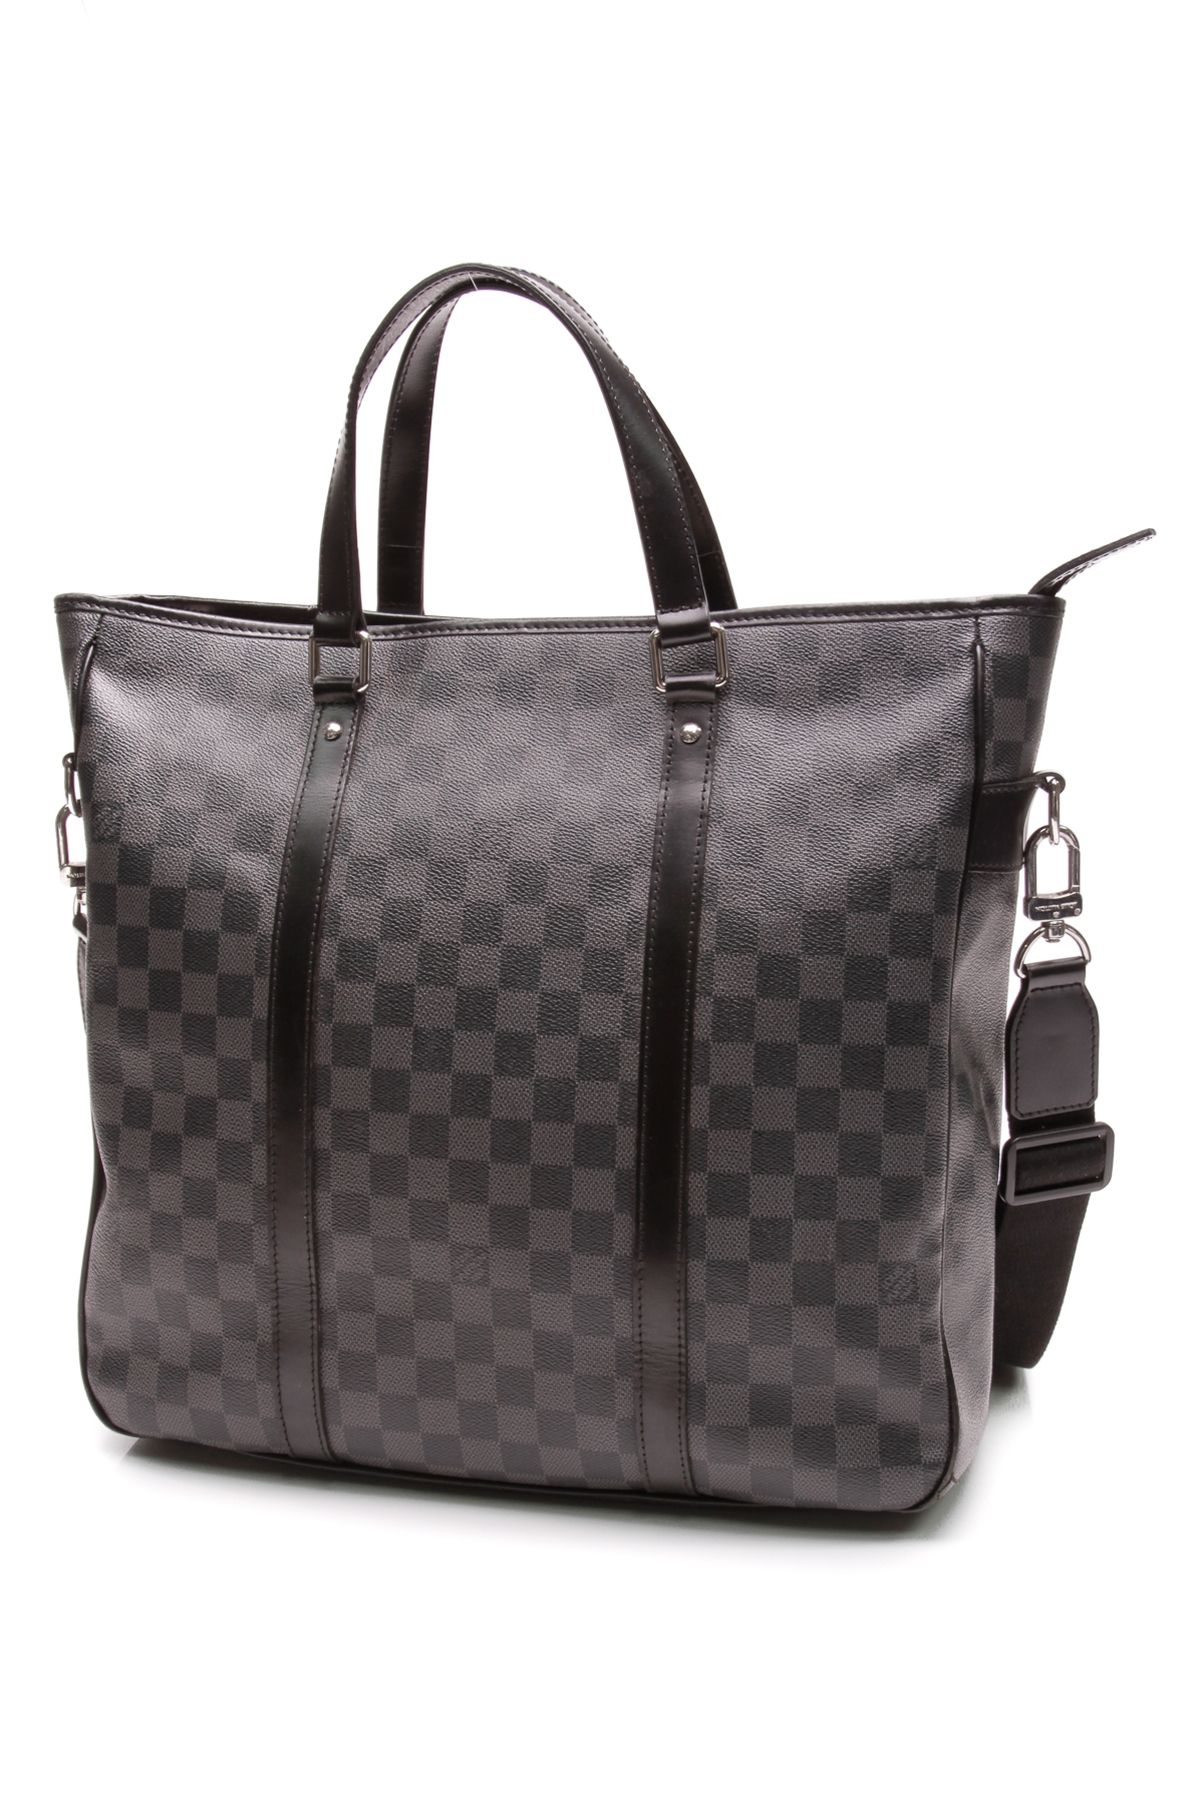 3e4e897a6c115 Perfect everyday bag for people who carry a lot Louis Vuitton Totes